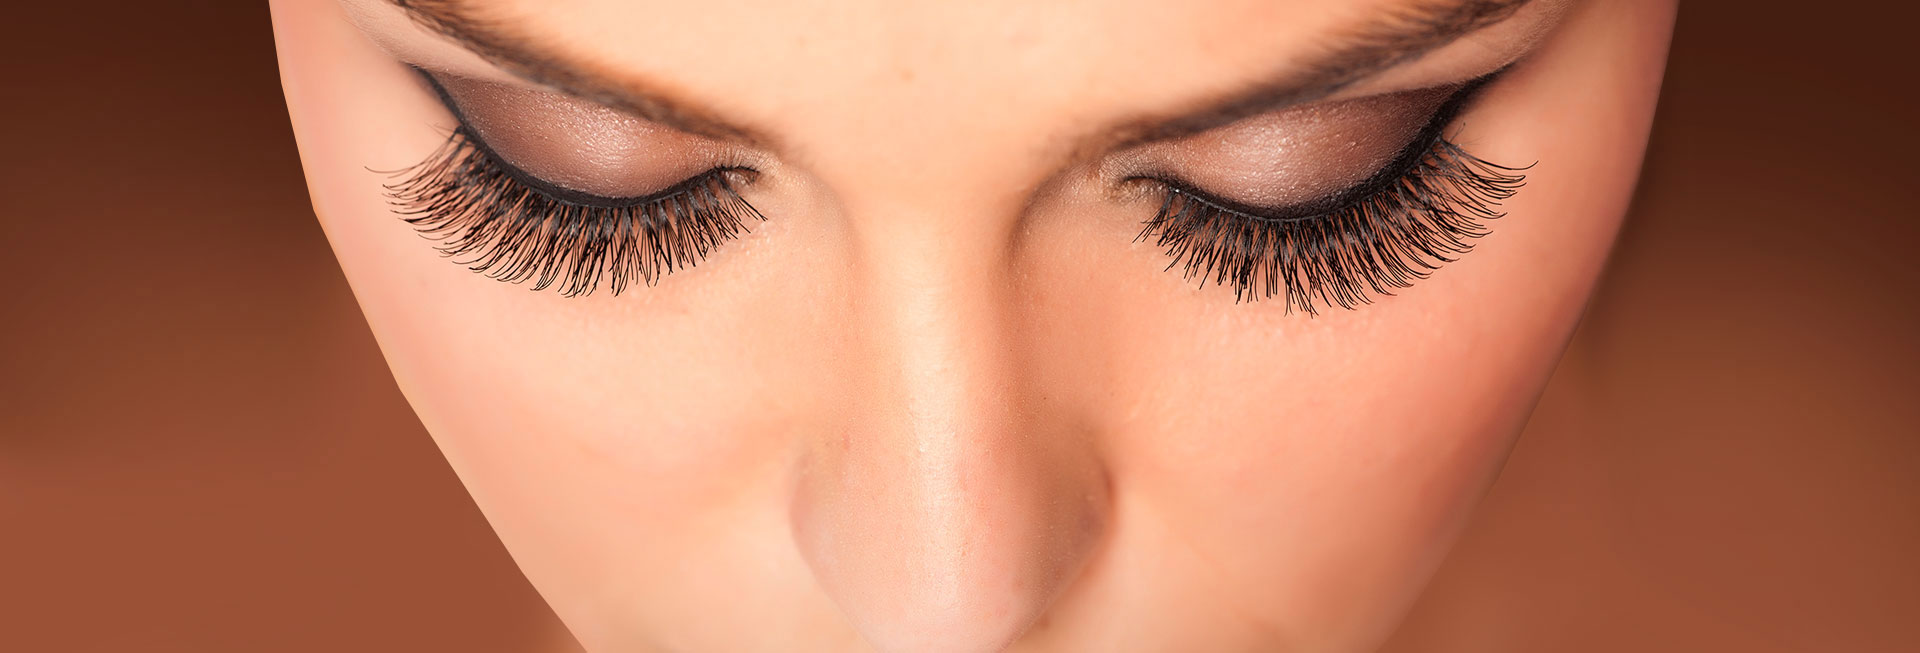 Image of a woman from above showcasing her eyelashes